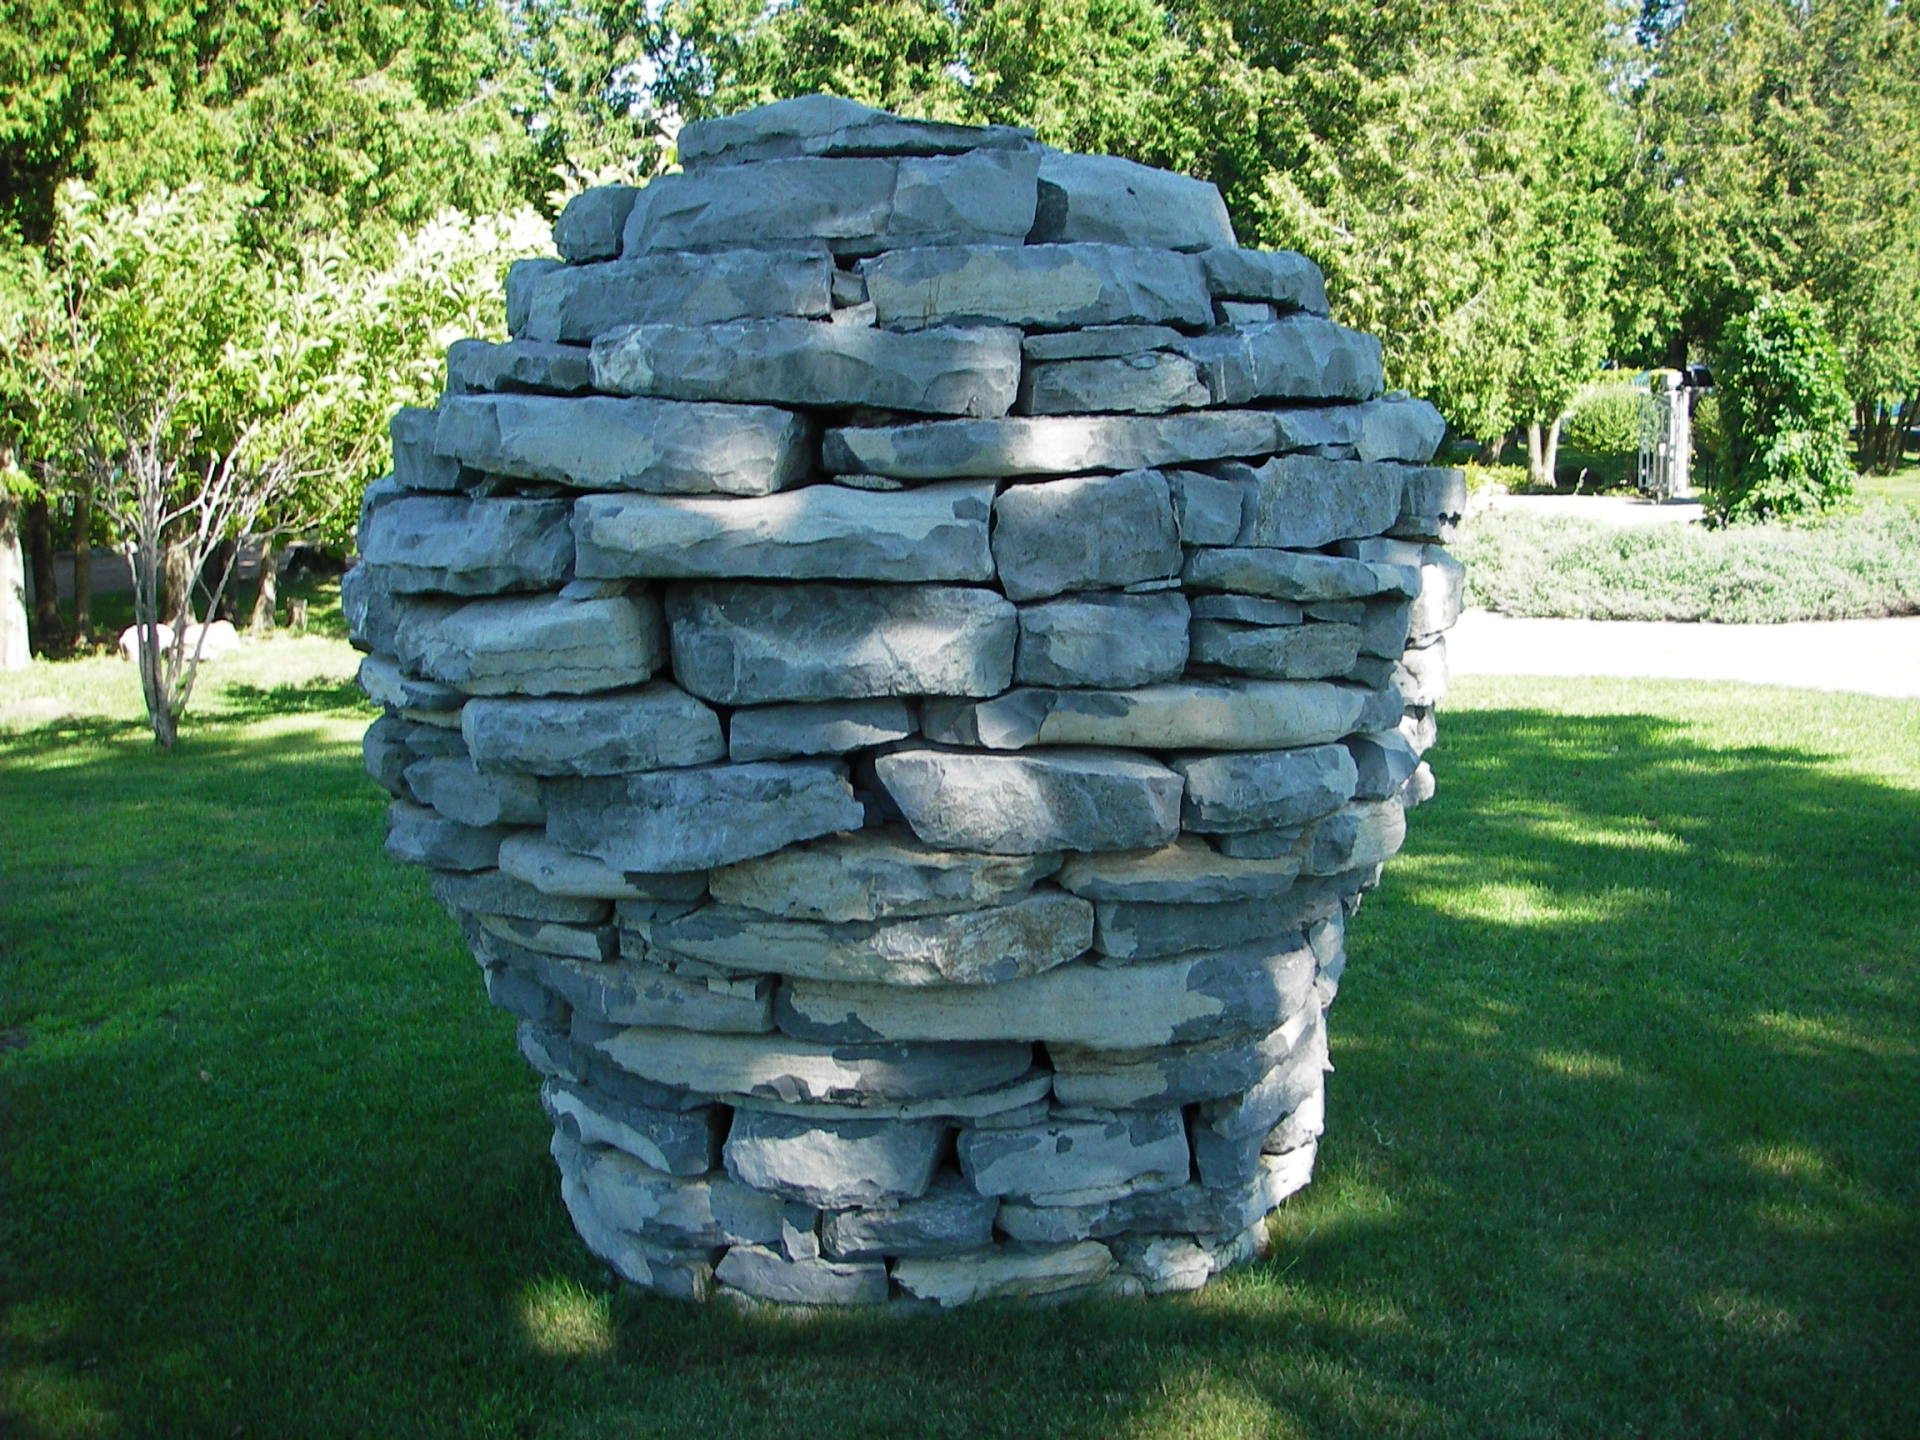 """Built for Mary Dial 2005 by Luke Wiseman Taylor.  Luke is listed as a co-creator and """"stone artist"""" in the Smithsonian Institution's Garden Club of America Collection, """"Gardens at Fox Run,"""" 2006-2007."""